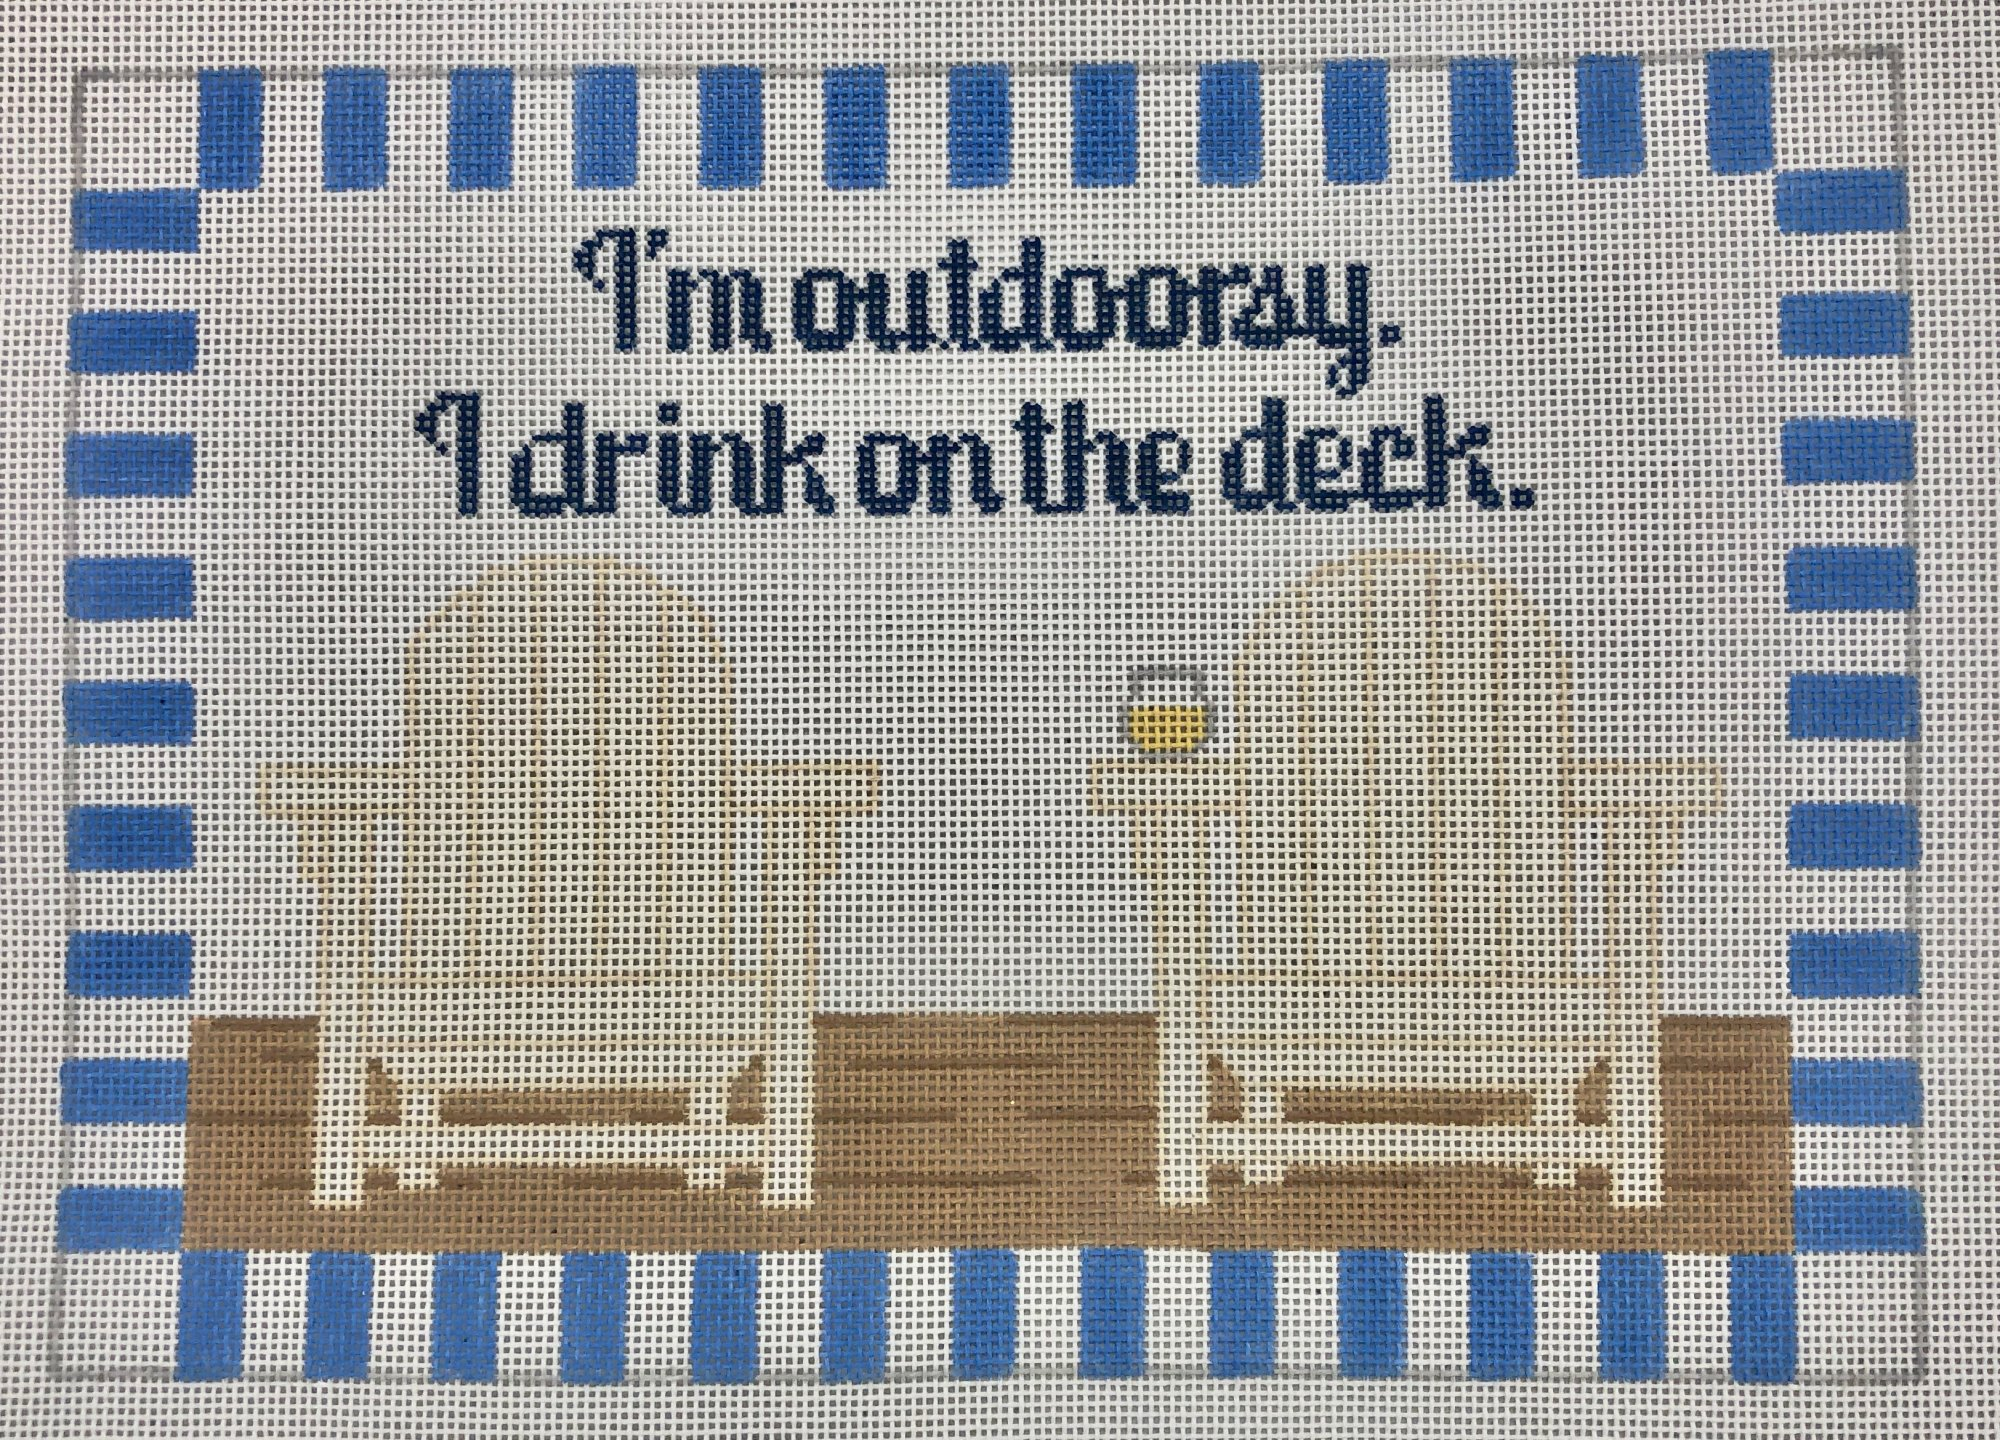 i'm outdoorsy, I drink on the deck